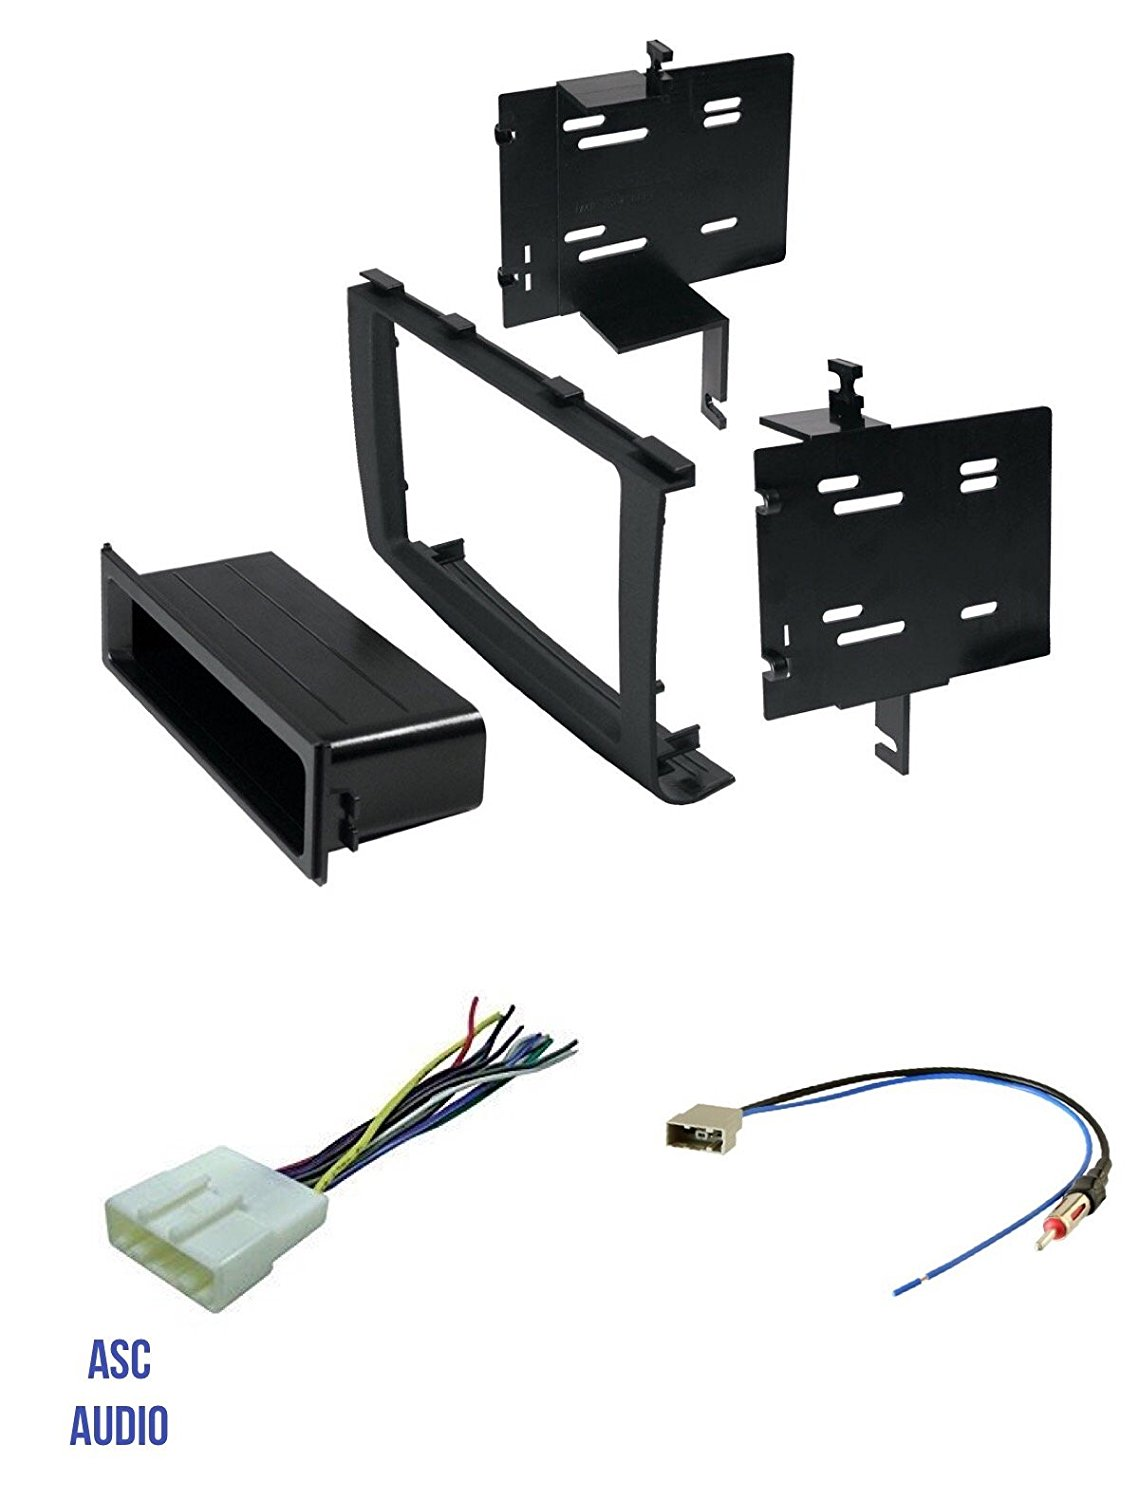 hight resolution of get quotations asc audio car stereo radio install dash kit wire harness and antenna adapter to